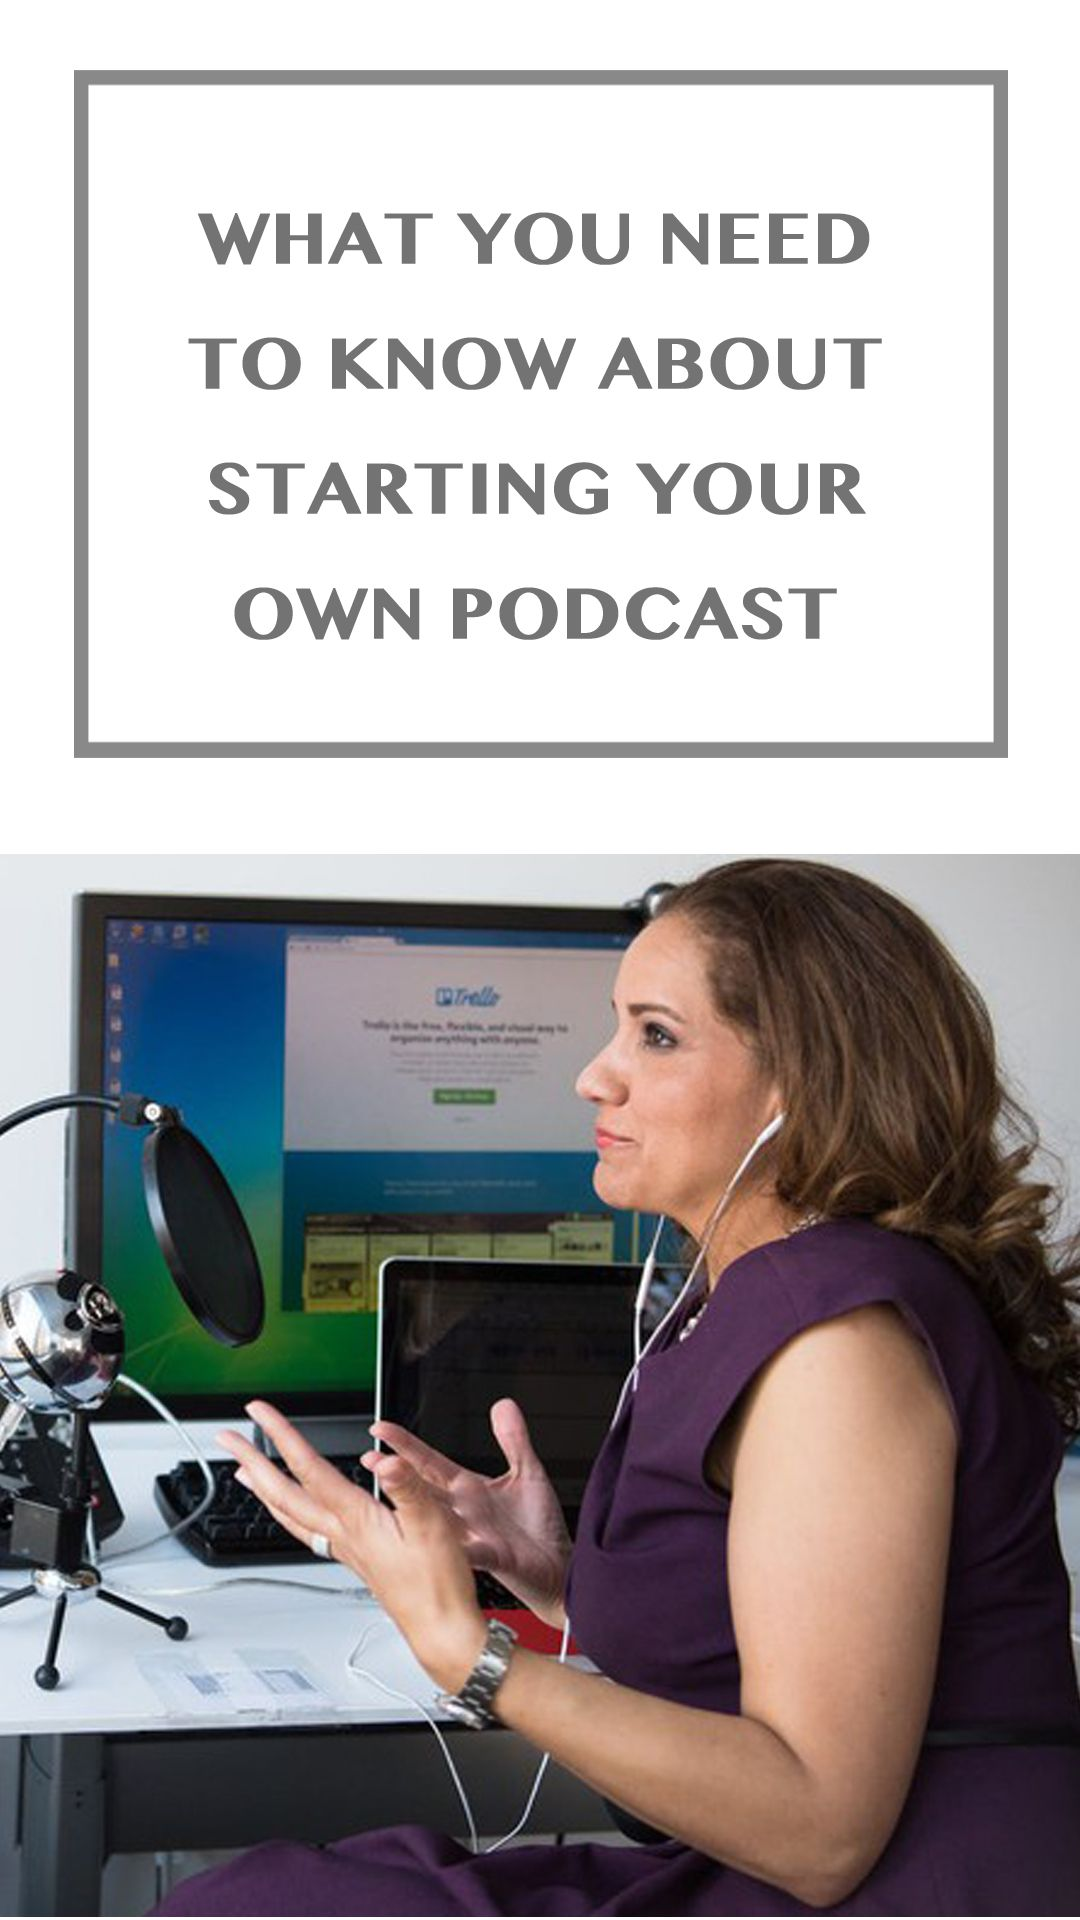 Here S Almost Everything You Need To Know About Starting Your Own Podcast